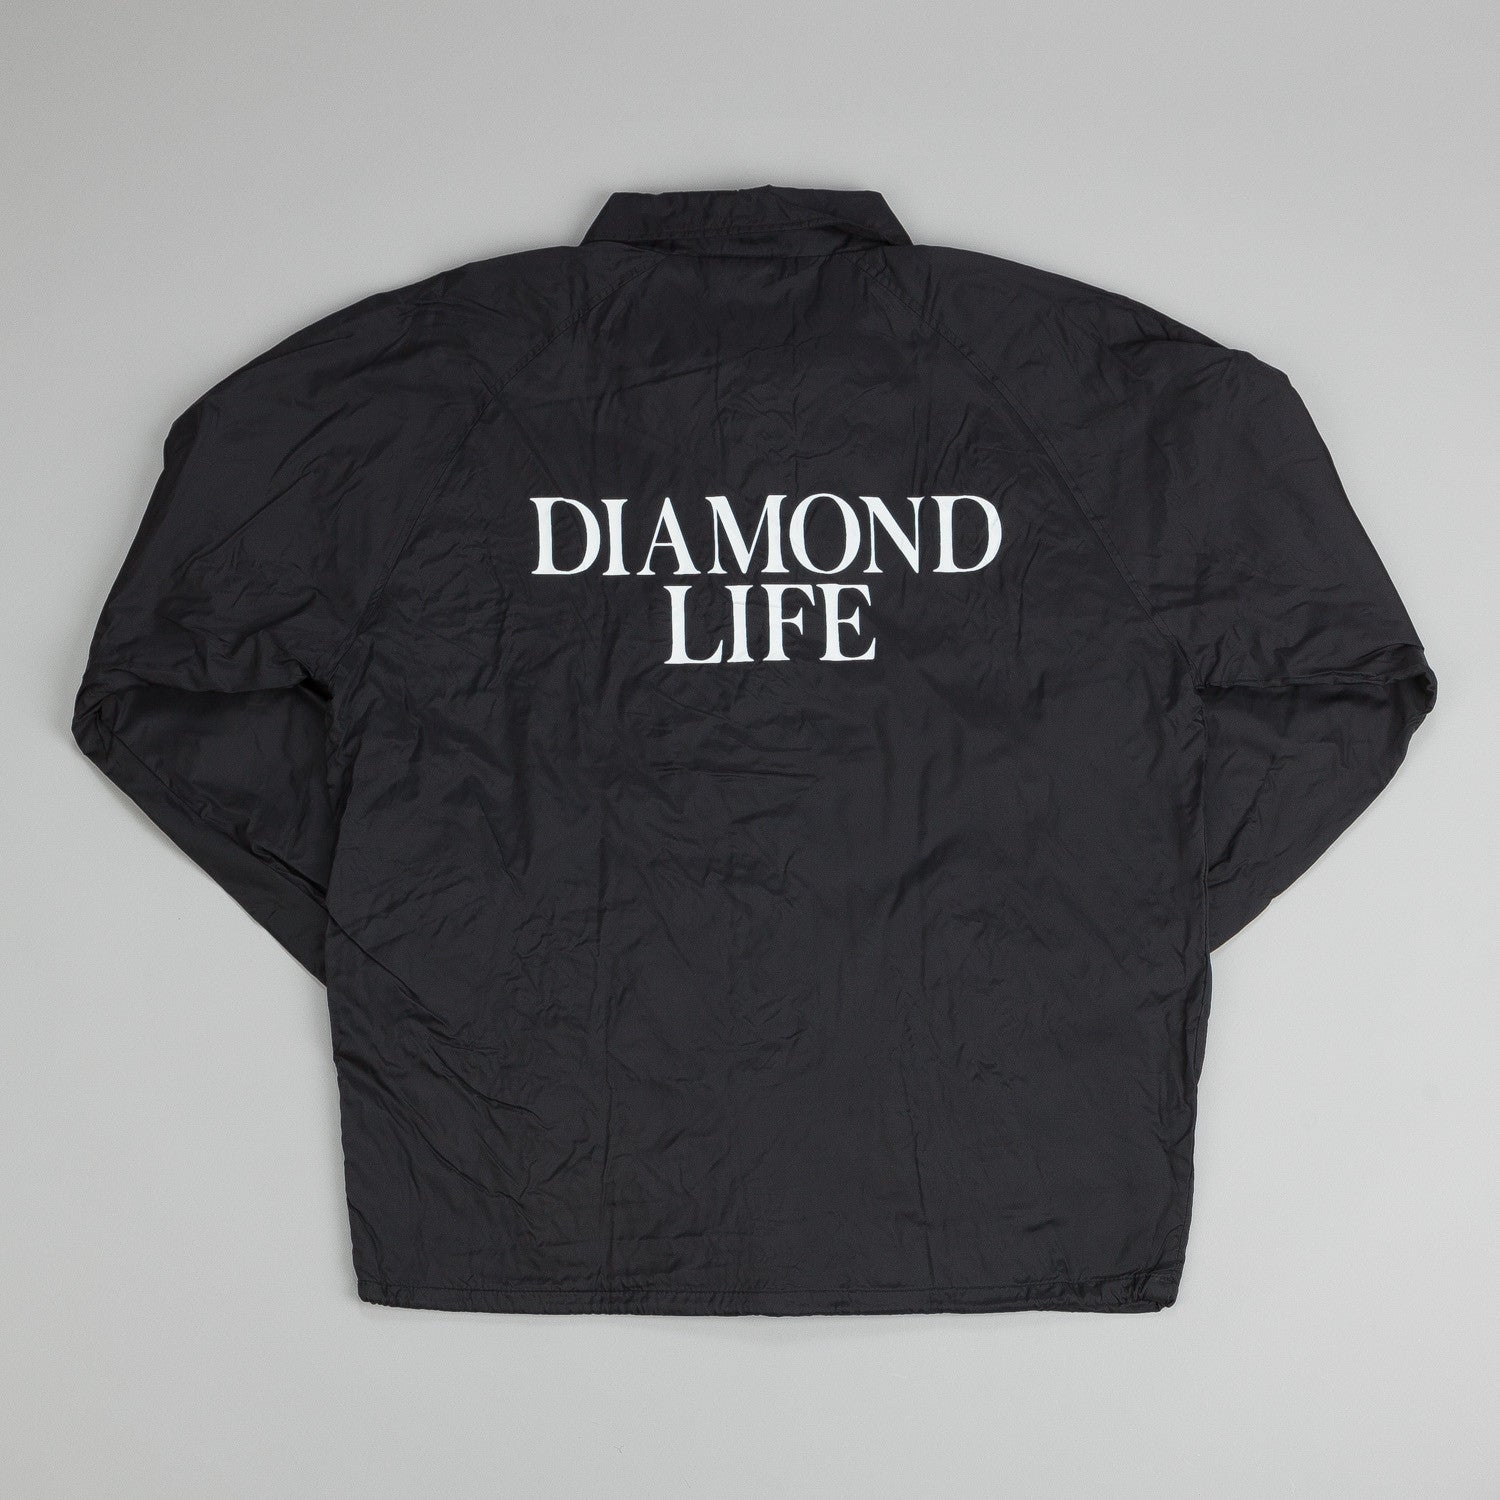 Diamond Life Coach Jacket Black